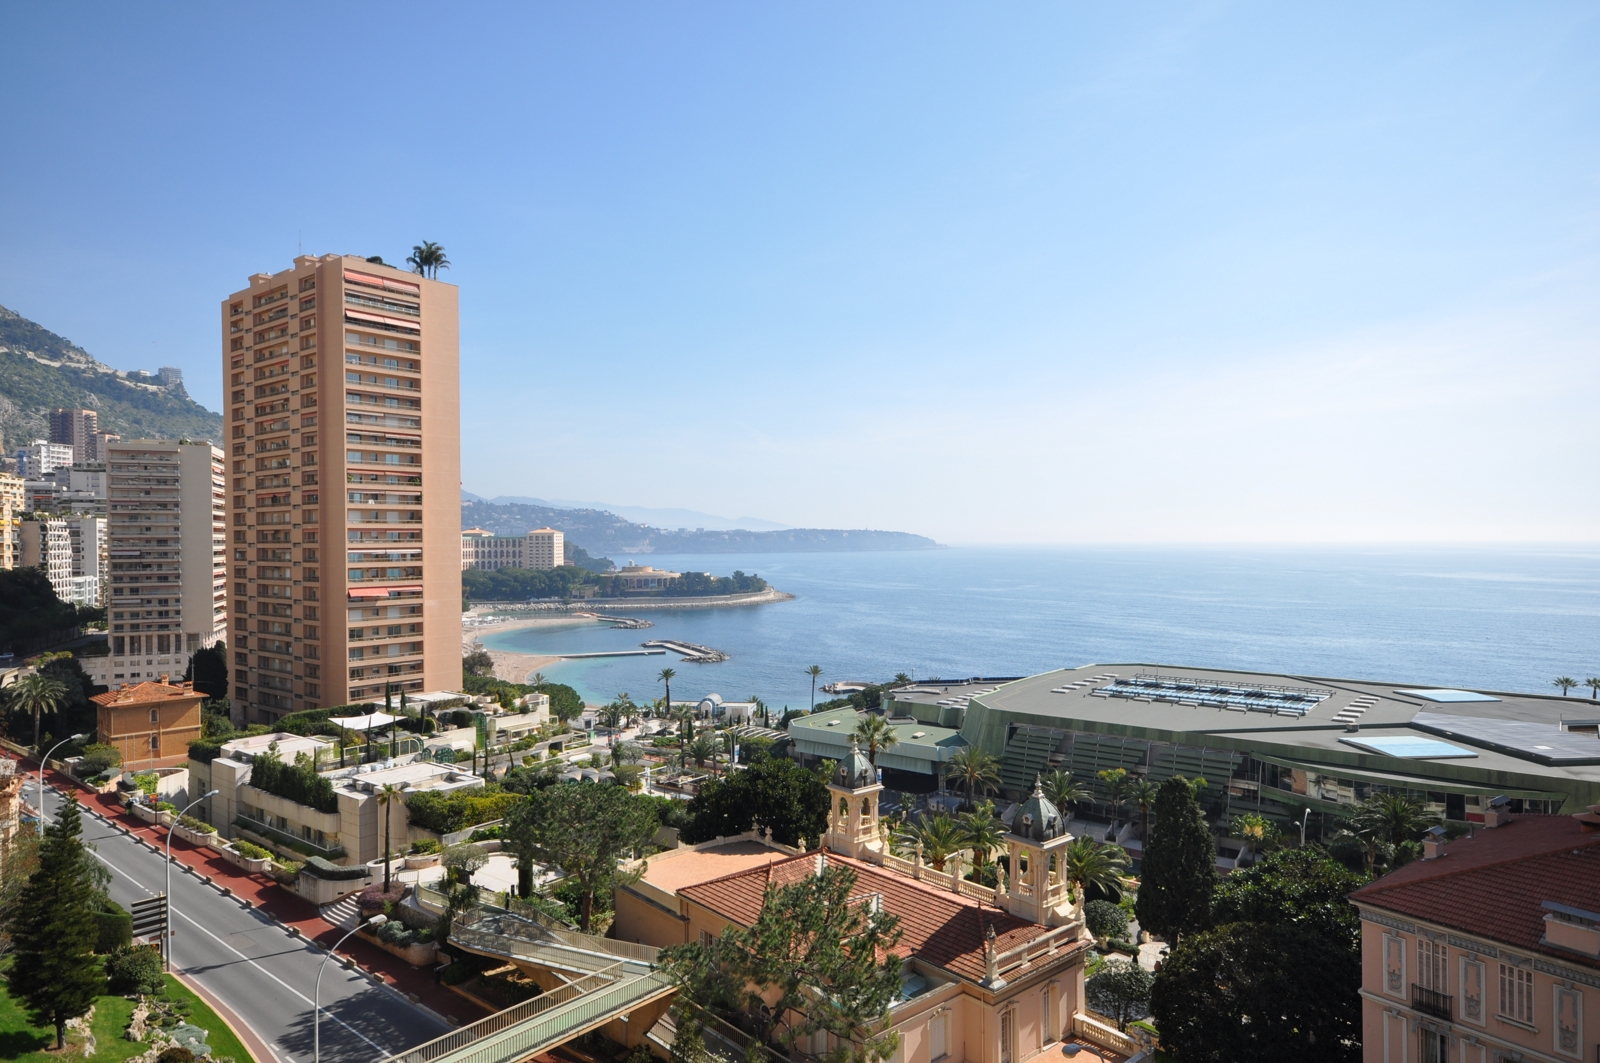 Apartment for Sale at L'Hersilia, 2 bedroom flat with superb sea views L'Hersilia 33, Avenue du Portier Other Monte Carlo, Monte Carlo 98000 Monaco